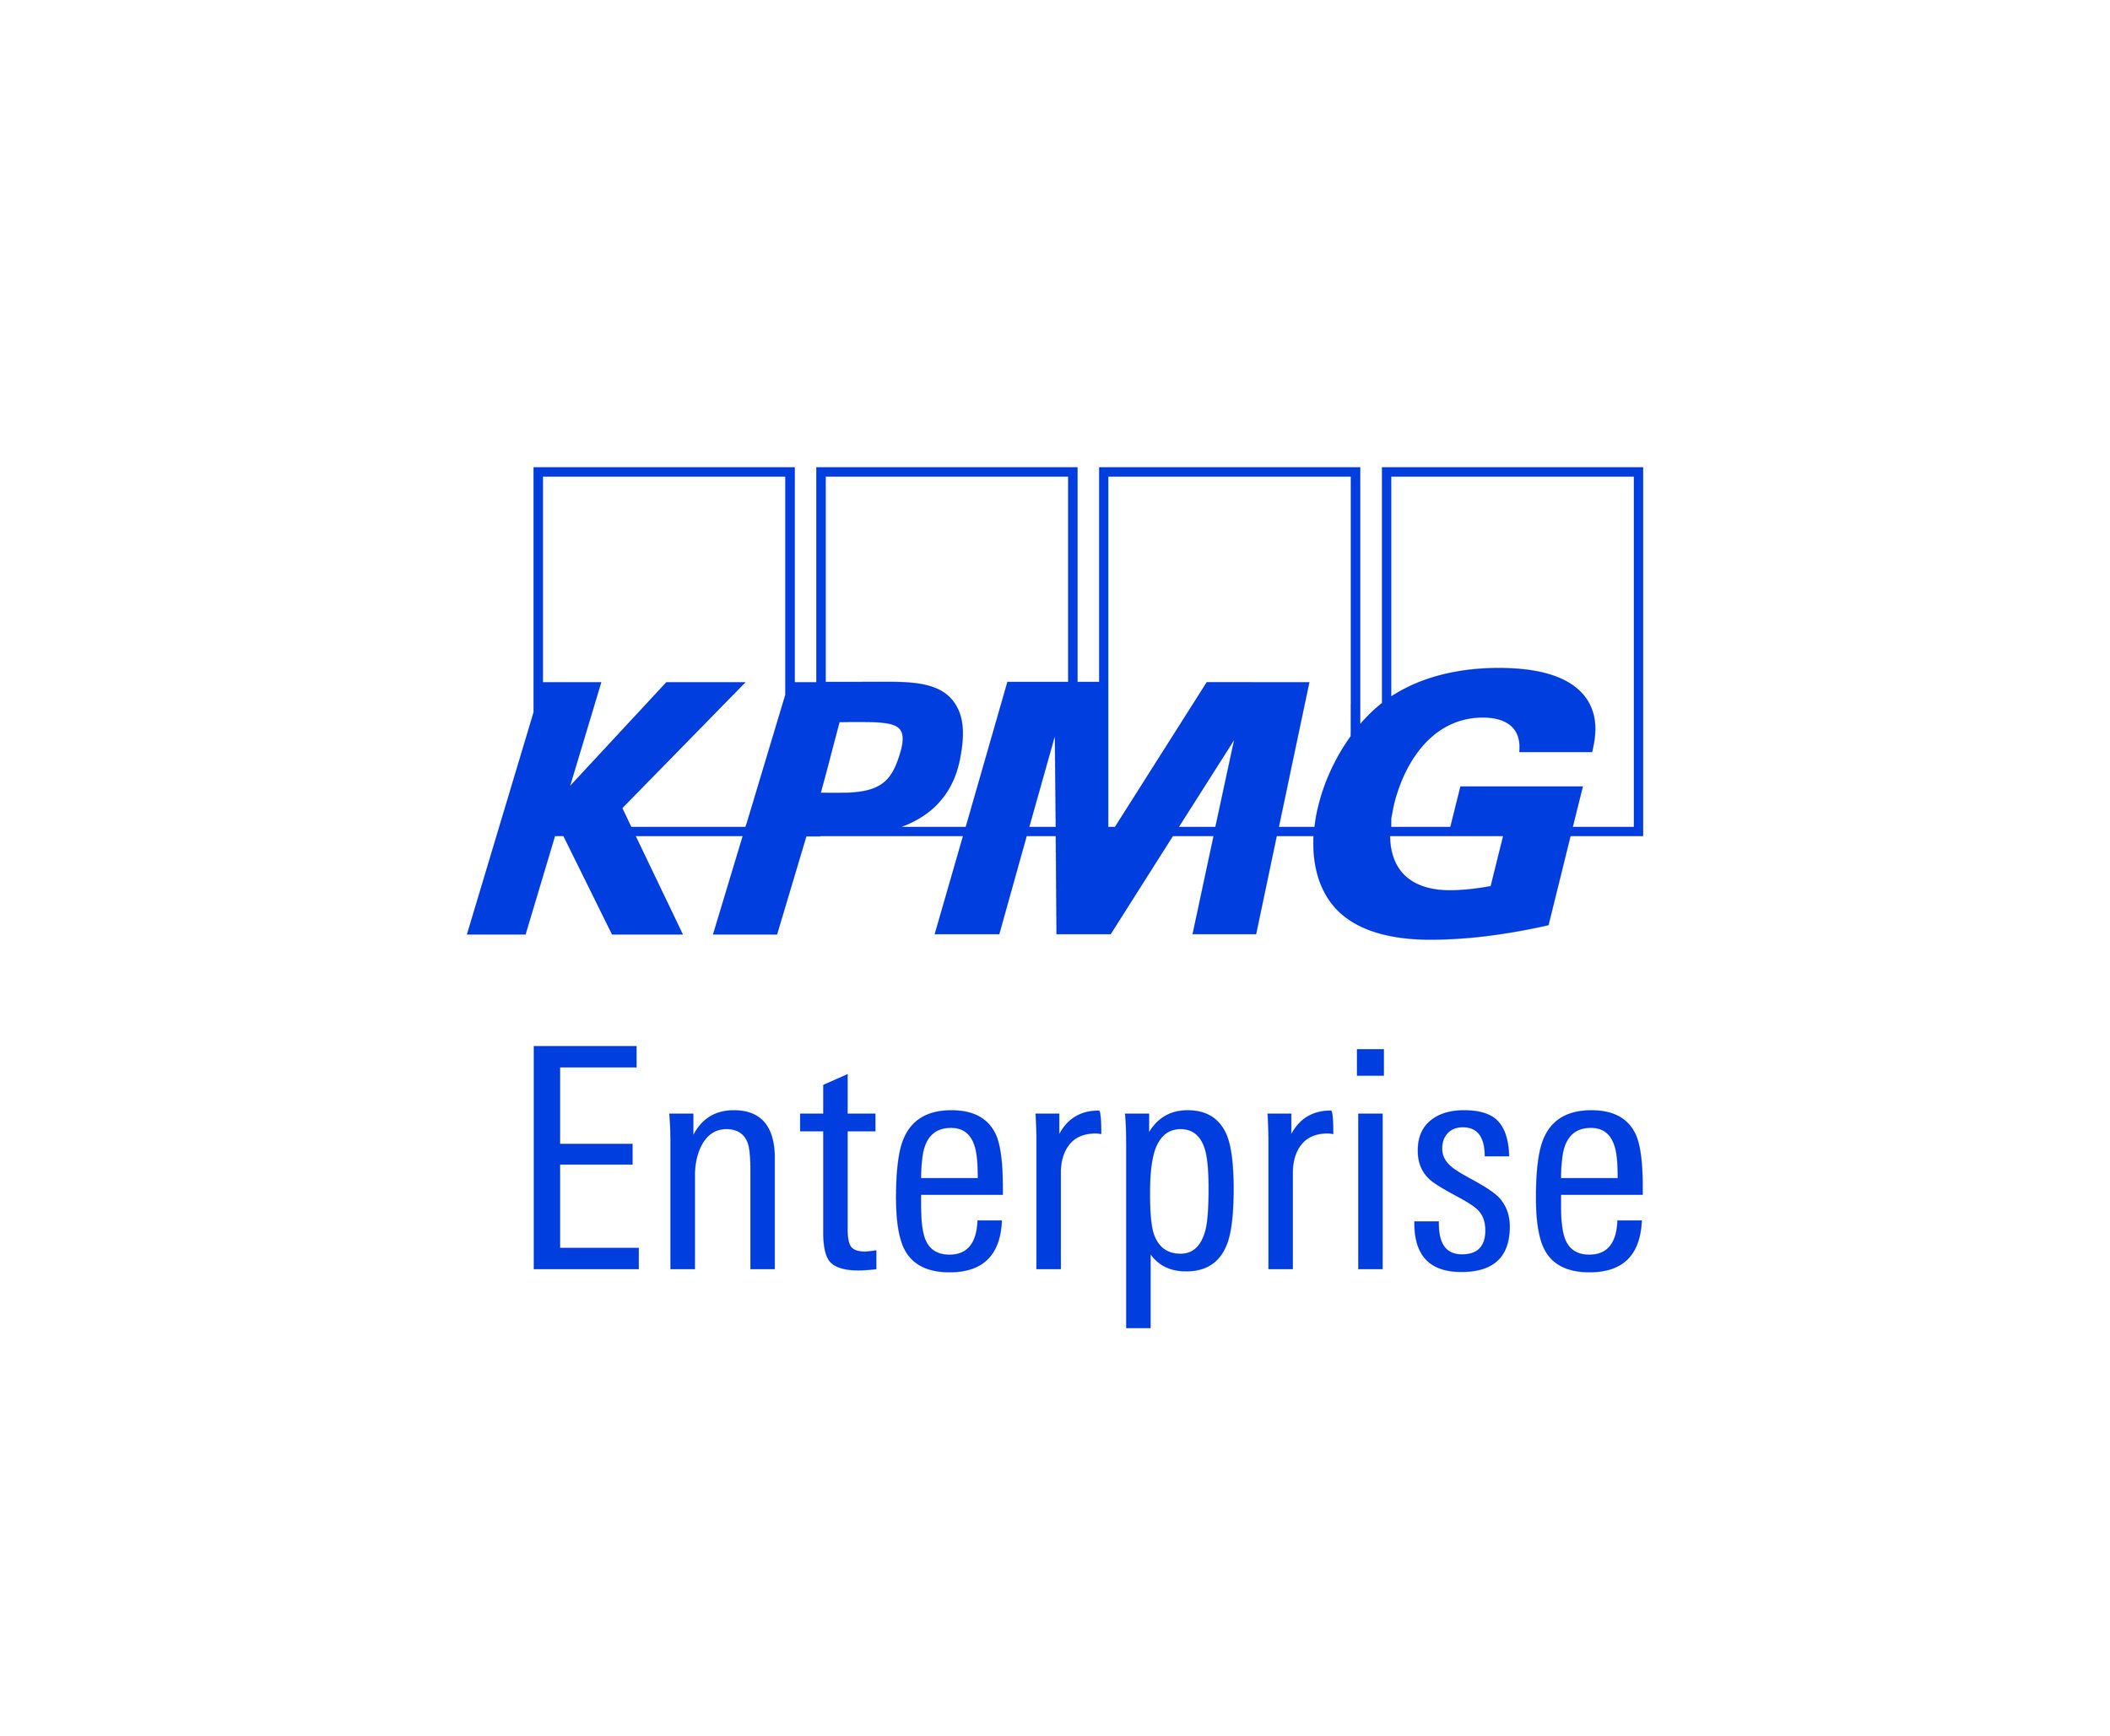 KPMG_enterprise_blue_PMS.jpg